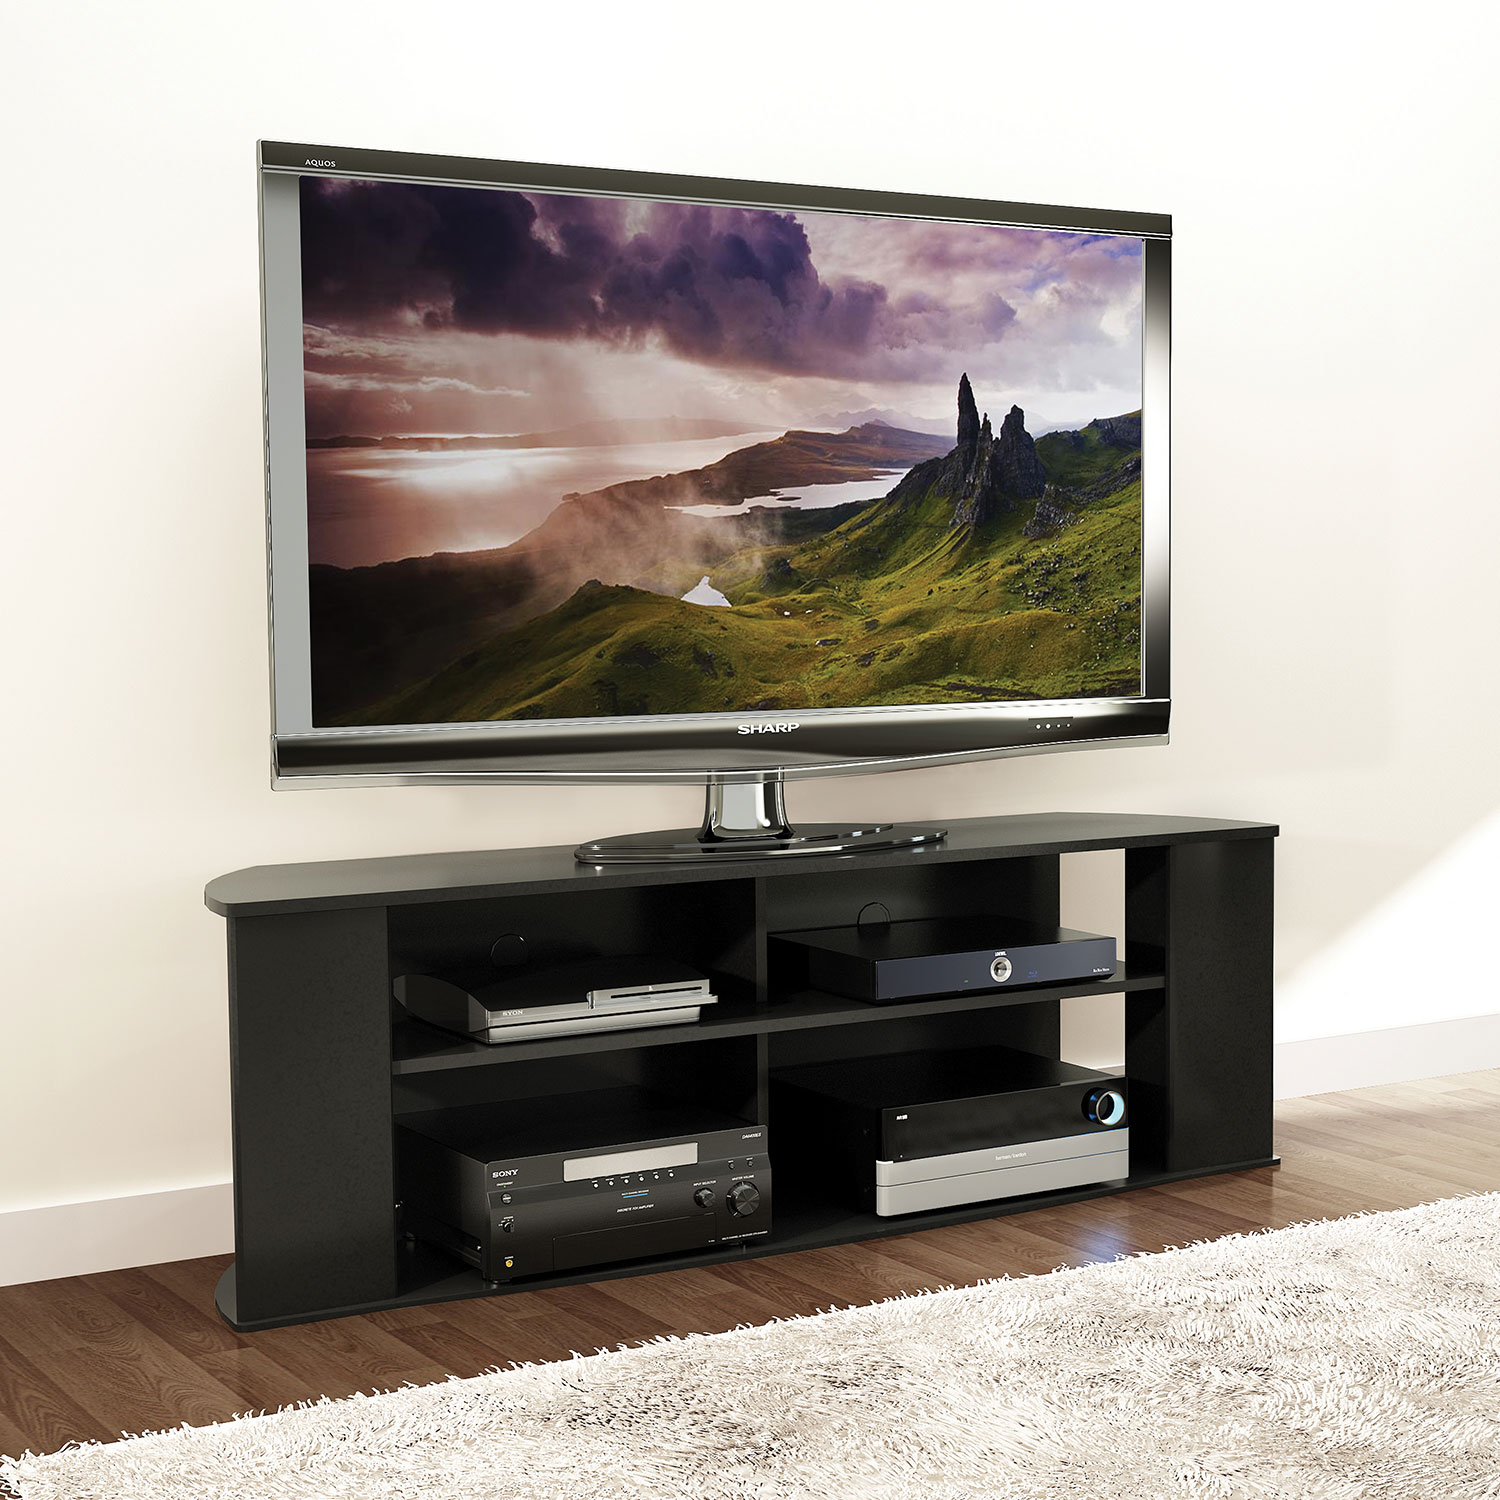 Best Tv Stands For 55 Inch | Home Decor Ideas